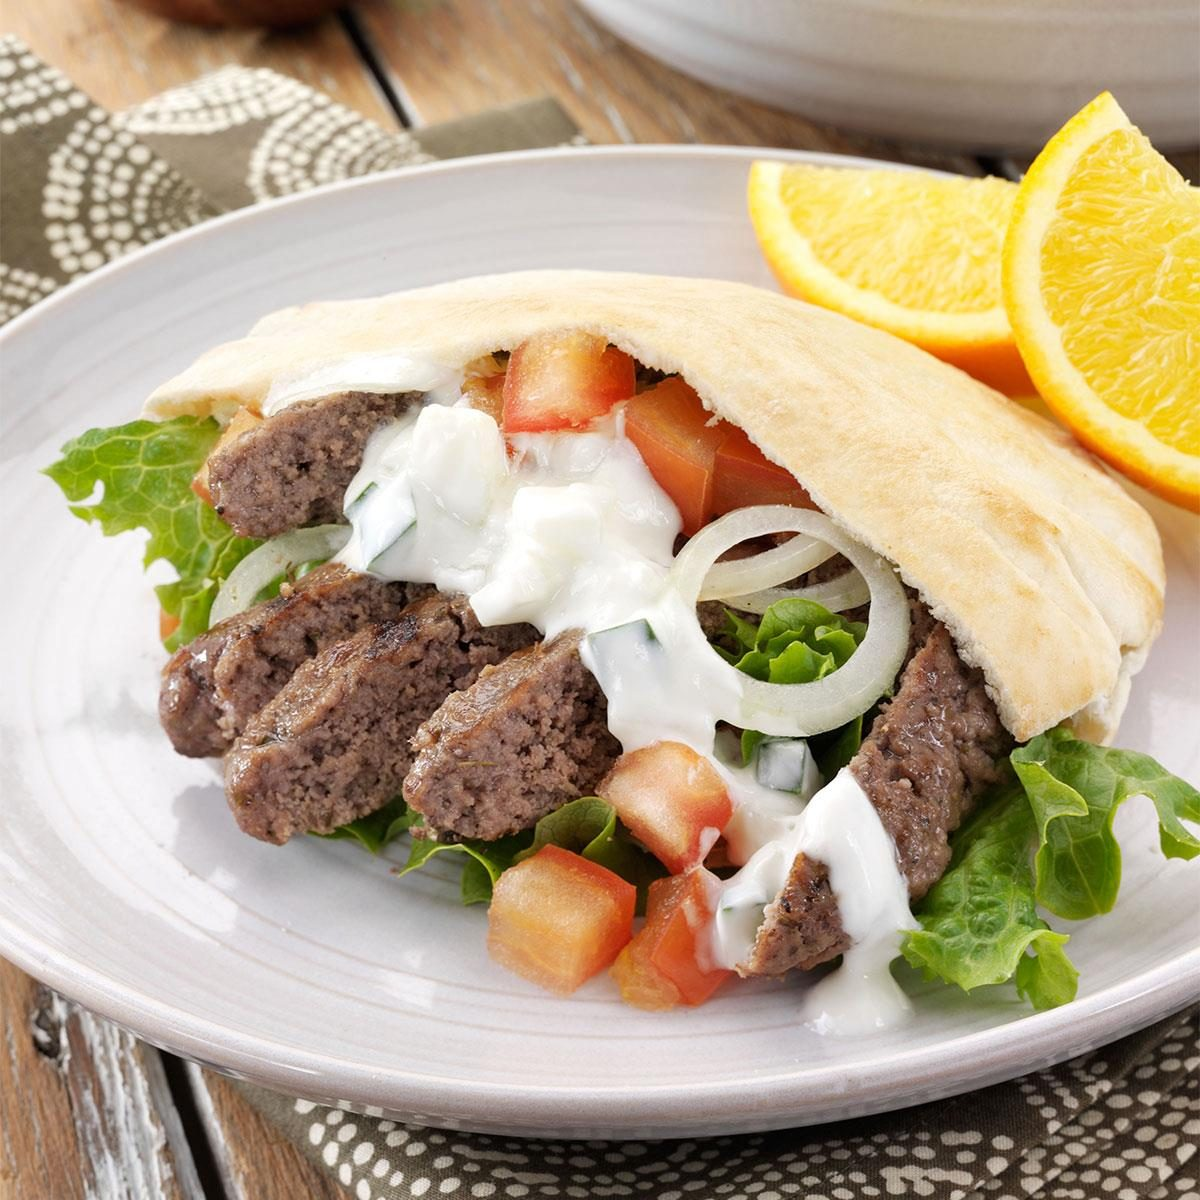 8 More Delicious And Easy Ground Beef Dinner Ideas: Ground Beef Gyros Recipe